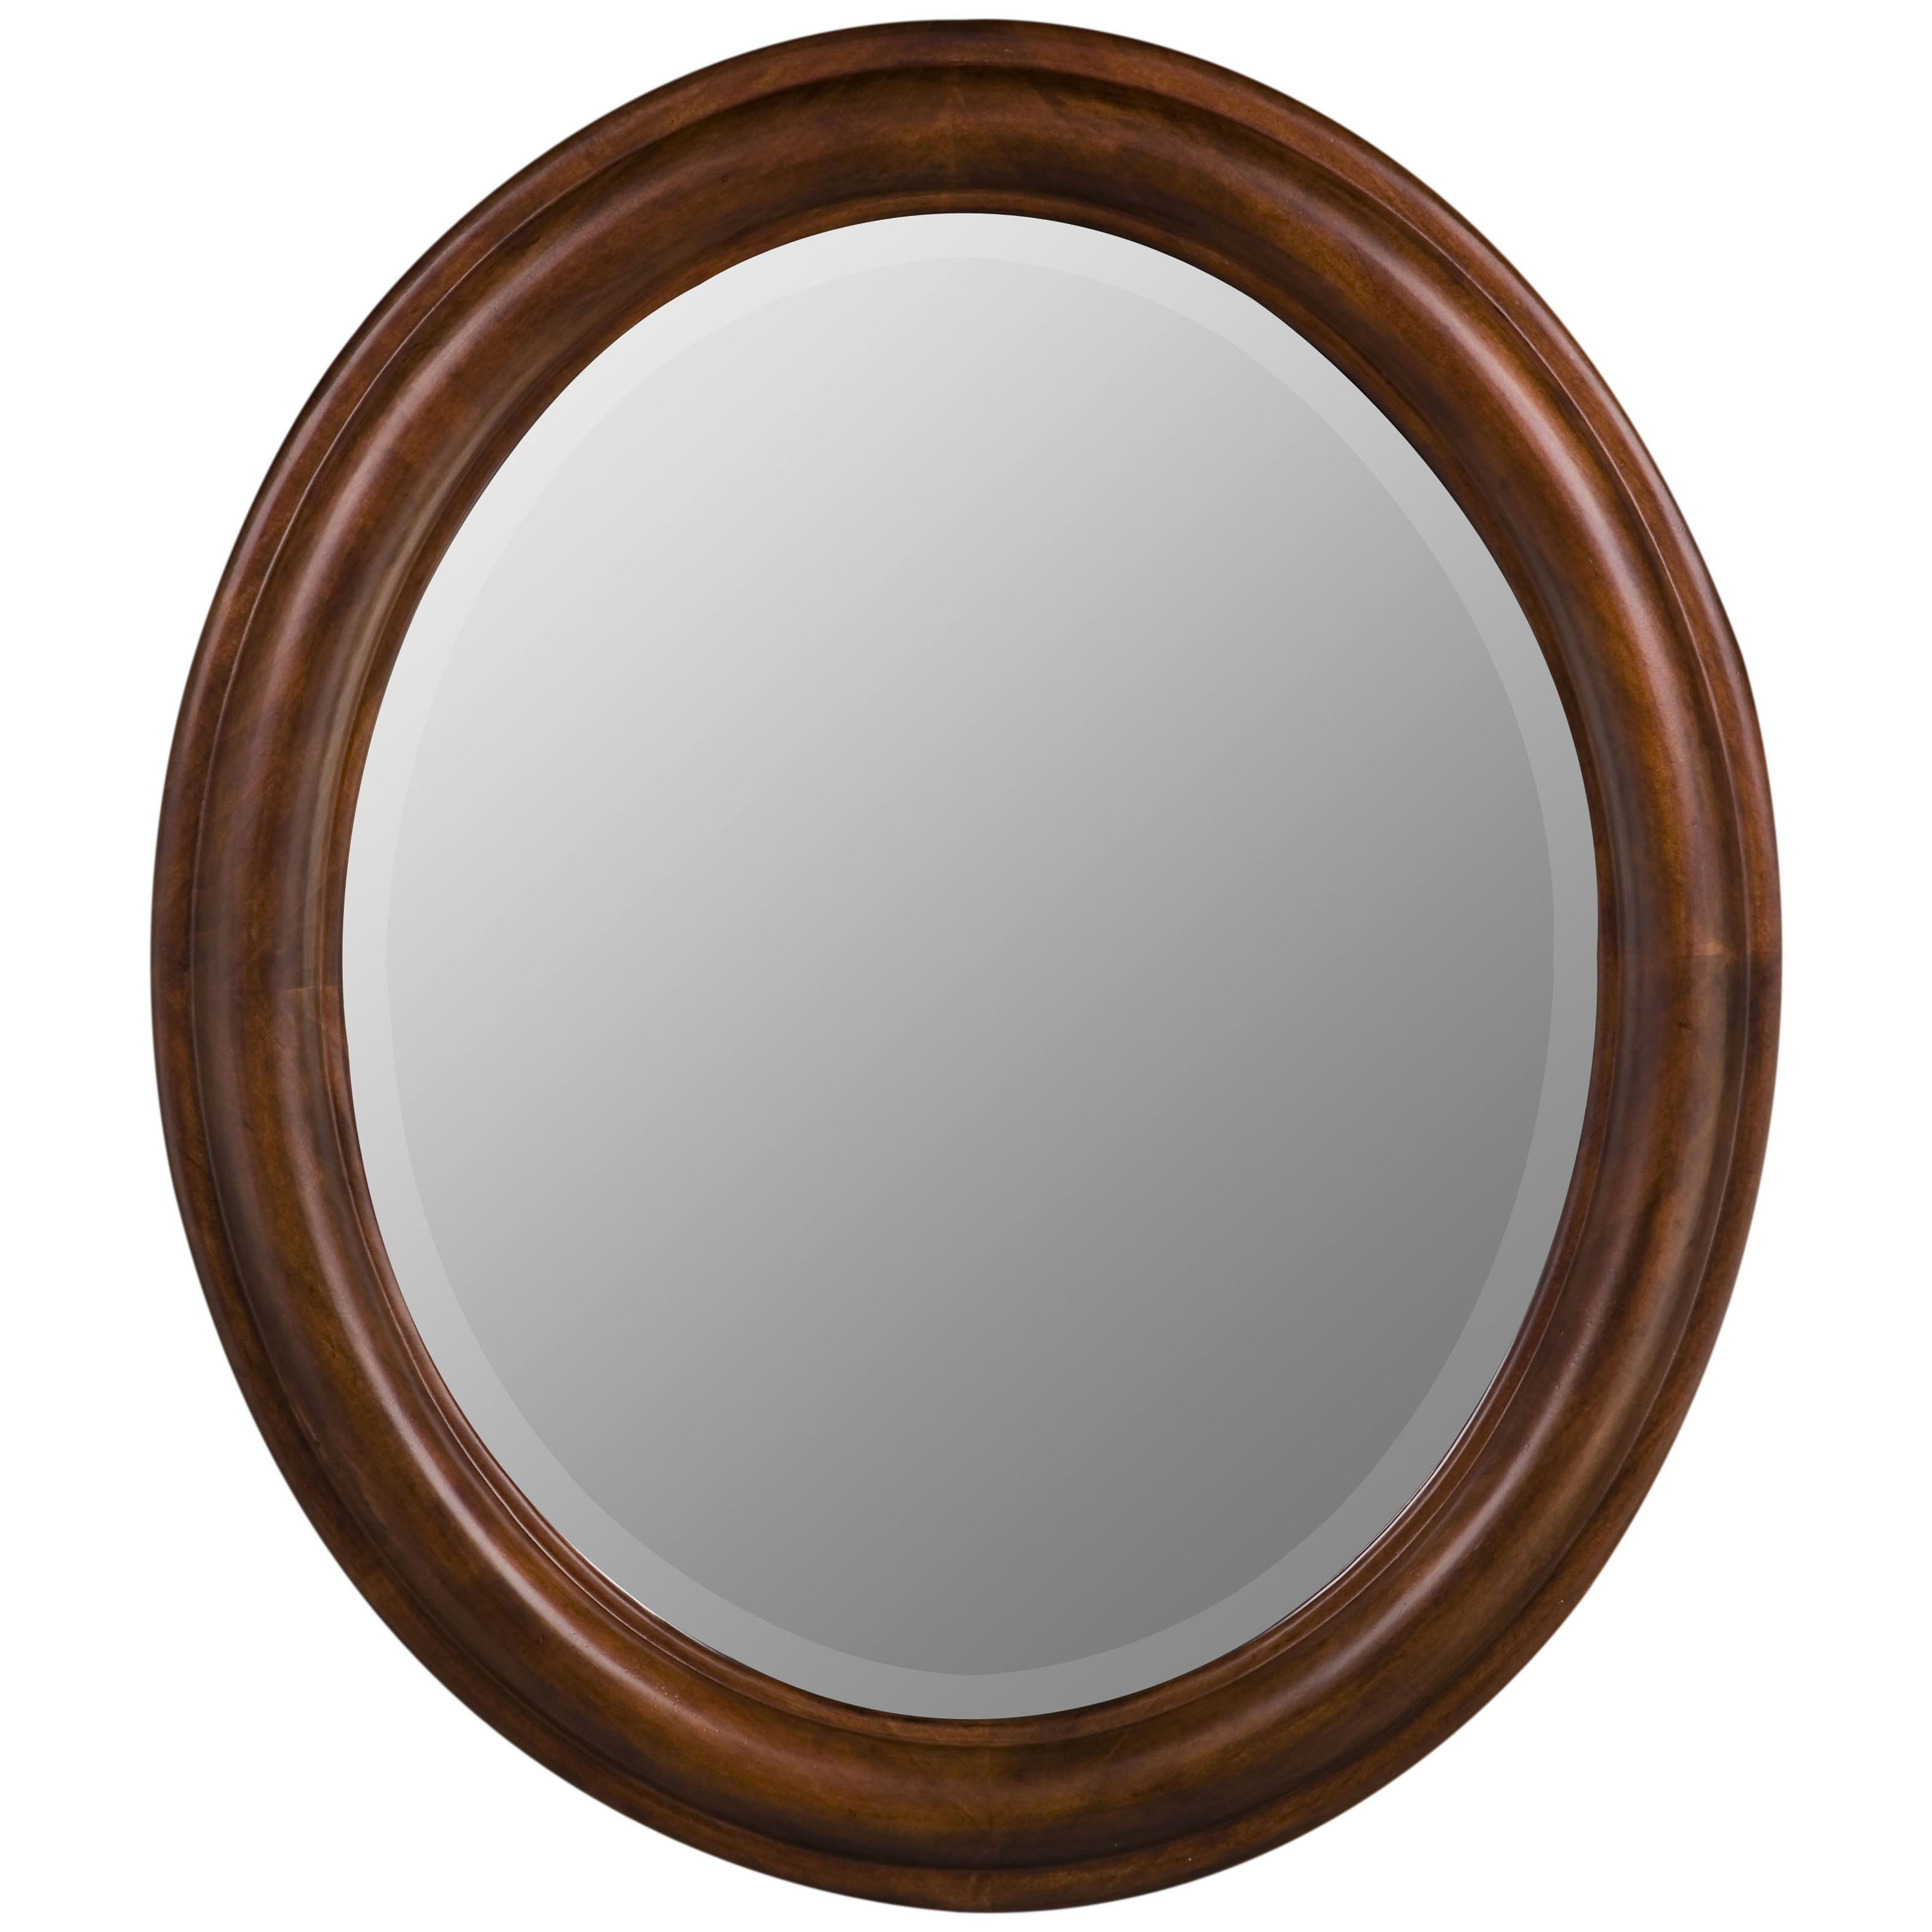 Cooper Classics Addison Oval Mirror Vineyard Finish 26W x 30H in. by Cooper Classics Inc